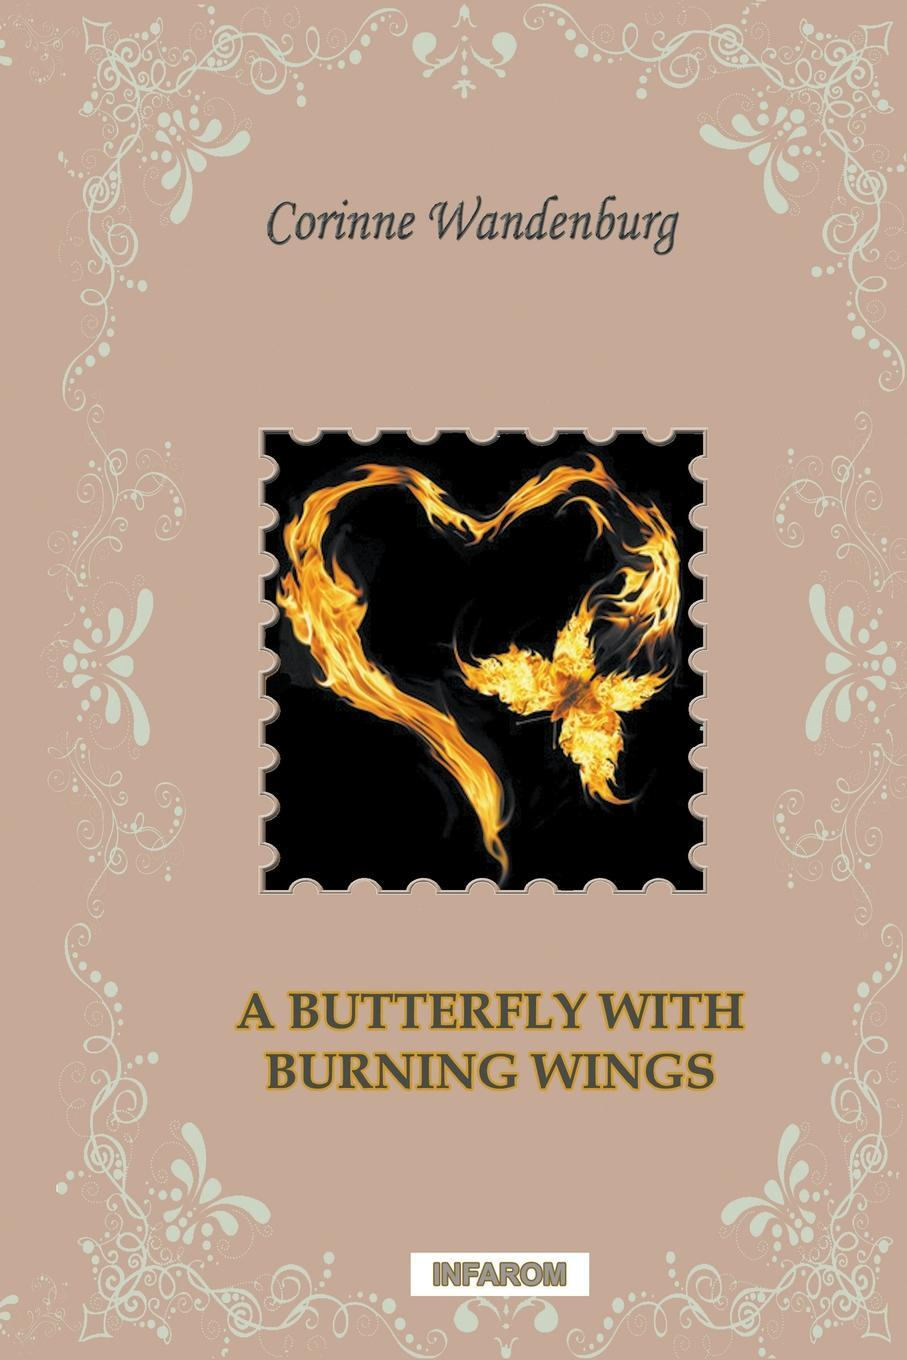 A Butterfly with Burning Wings